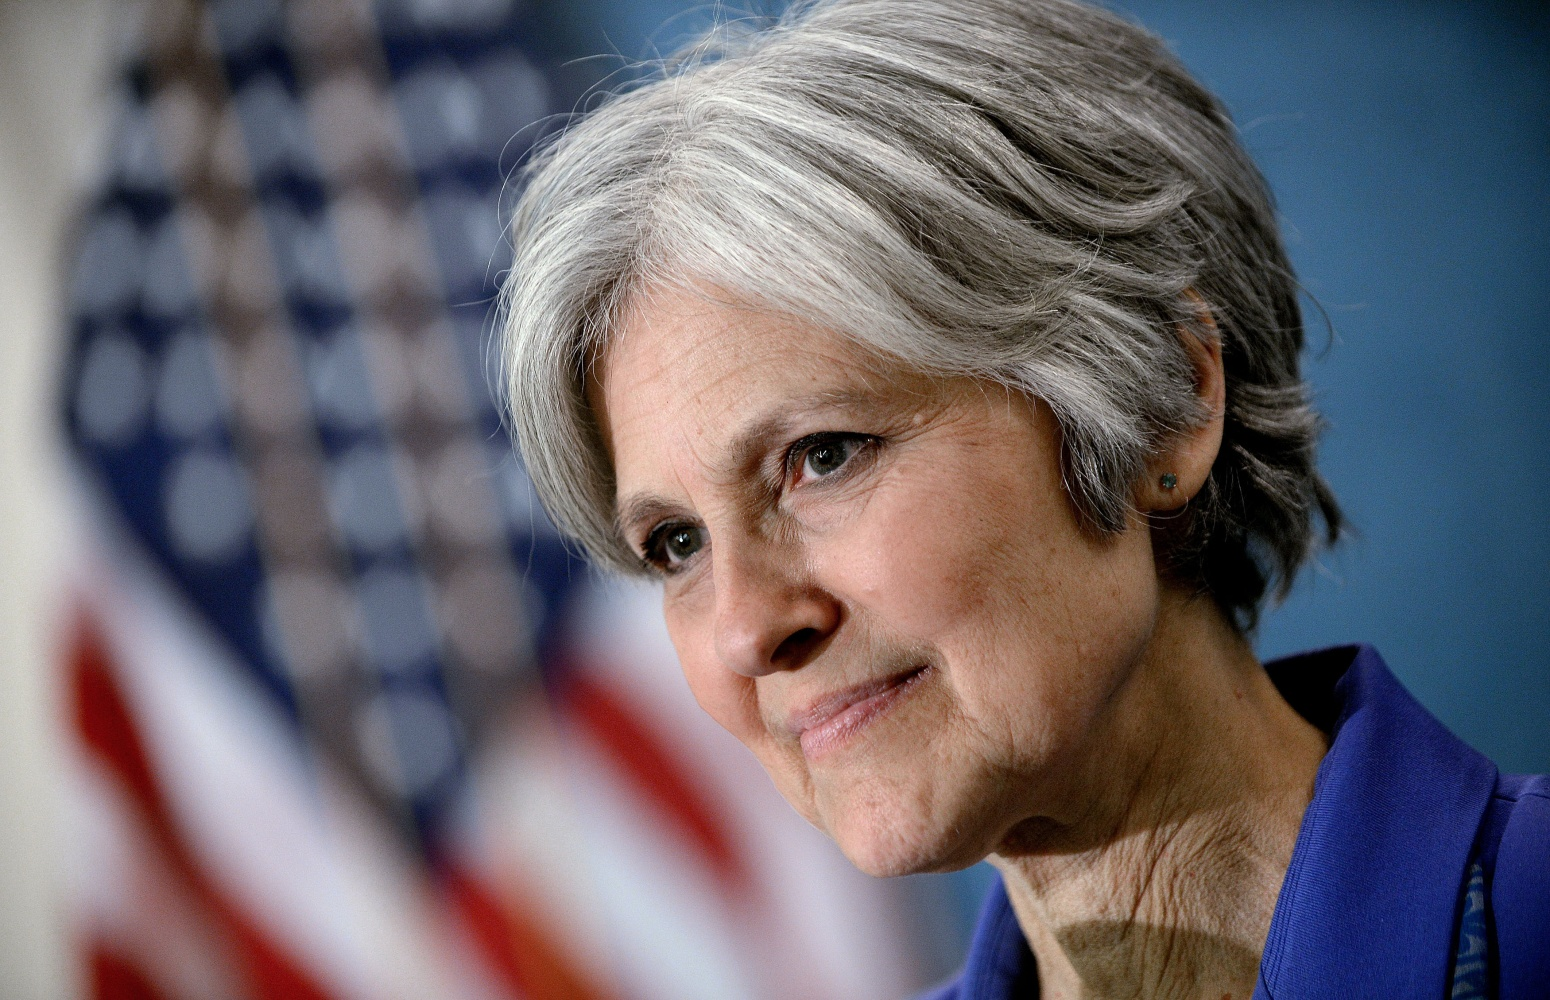 Dc Green Party Presidential Nominee Jill Stein Makes Announcement On 2016 Race